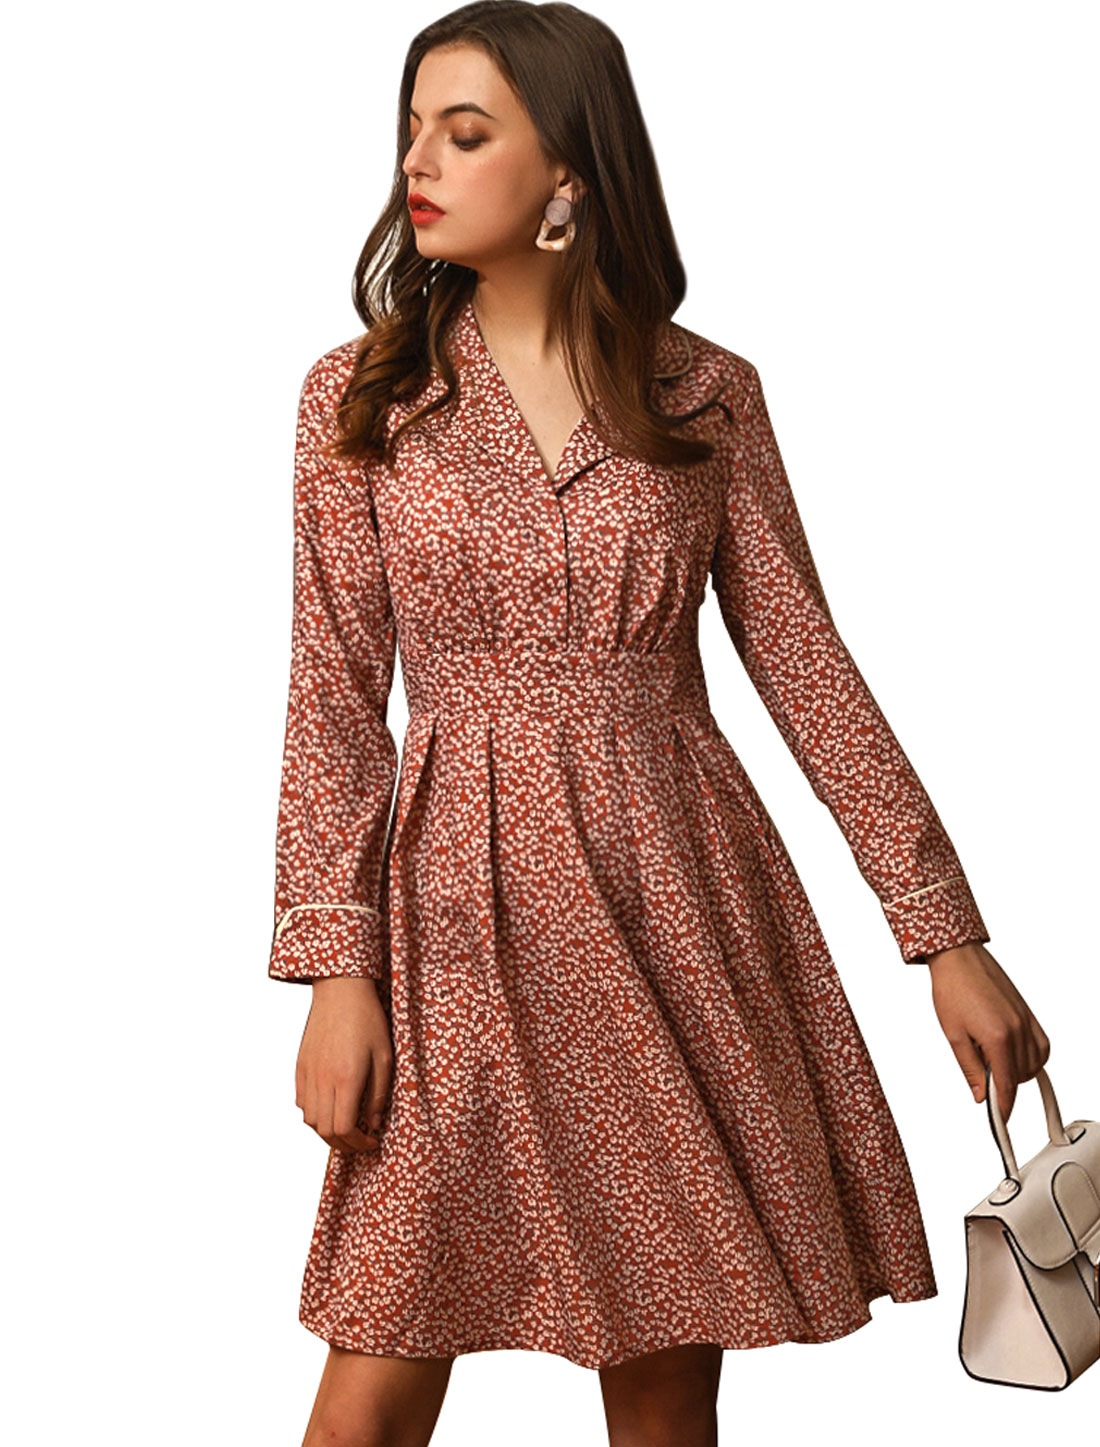 Allegra K Women's Vintage Long Sleeve Lapel Floral A-Line Dress Red XL